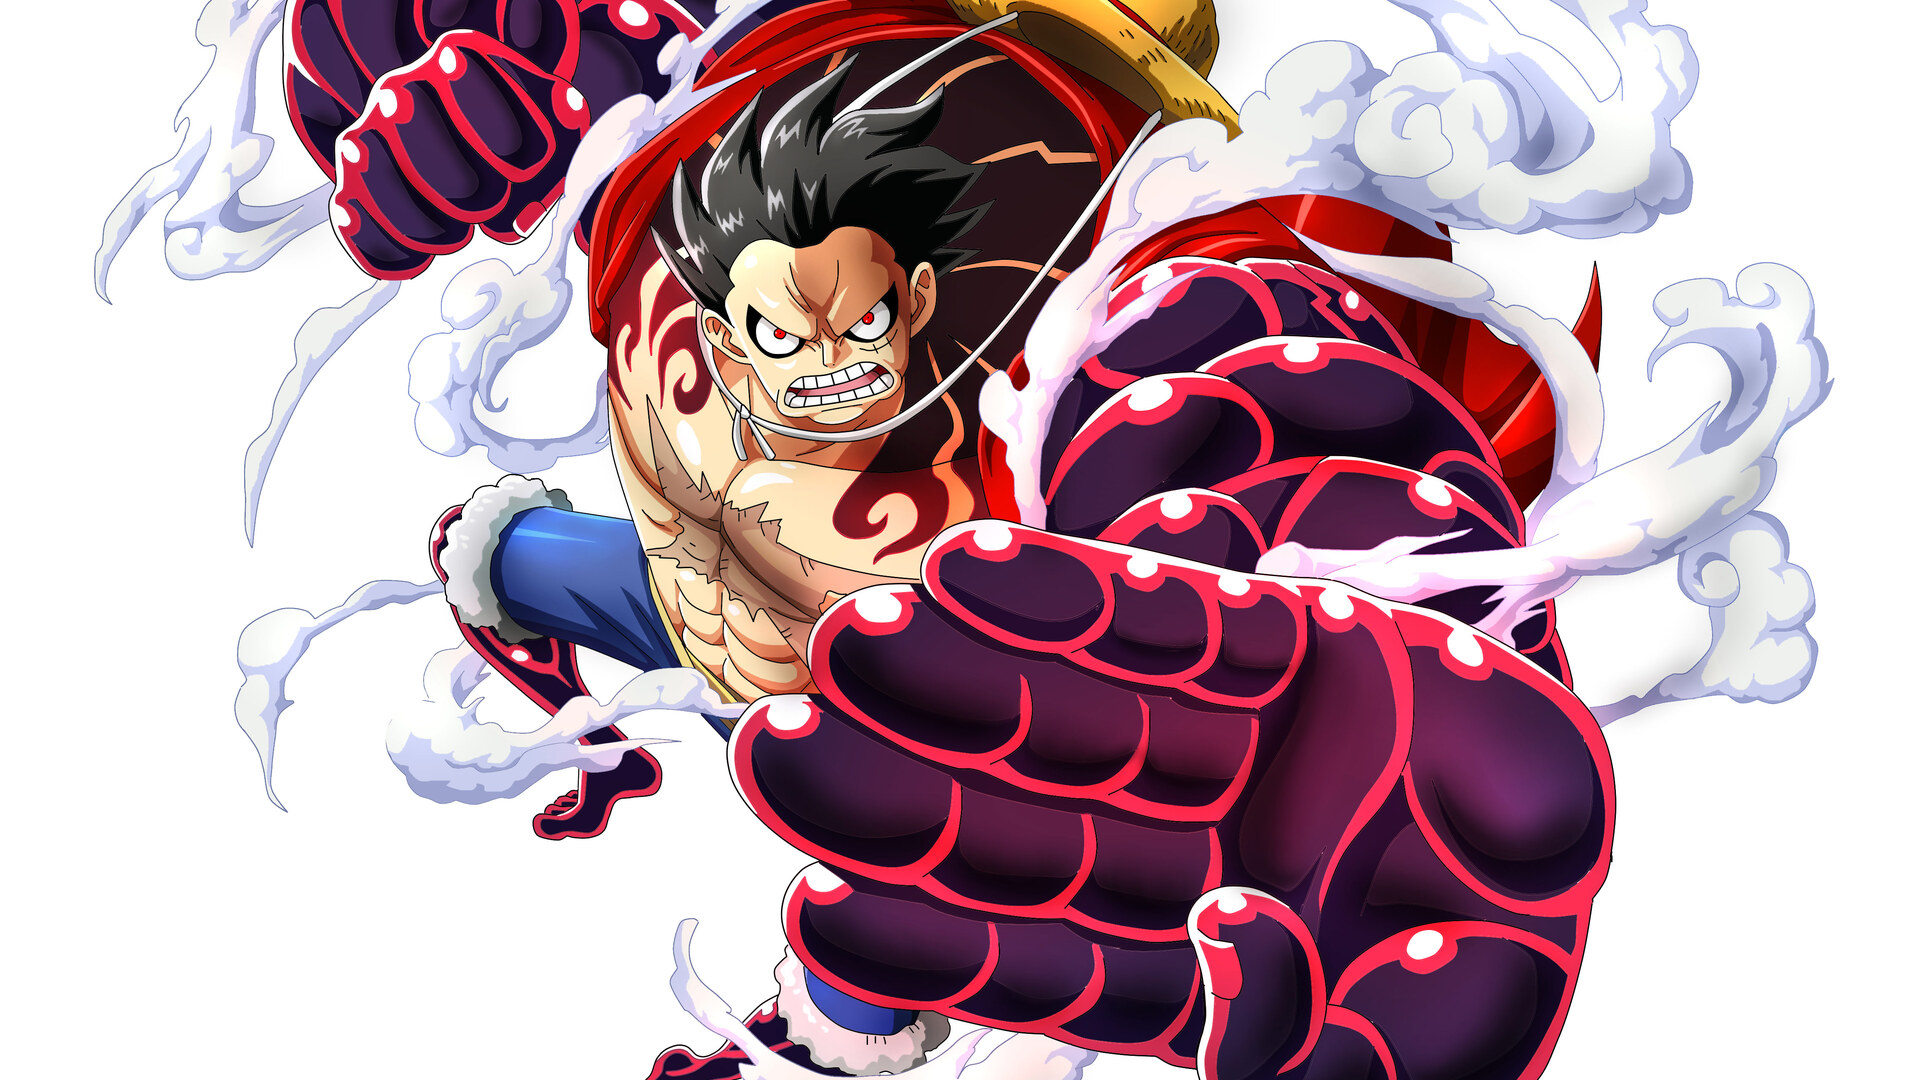 1920x1080 monkey d luffy one piece laptop full hd 1080p hd 4k wallpapers images backgrounds - One piece wallpaper hd ...